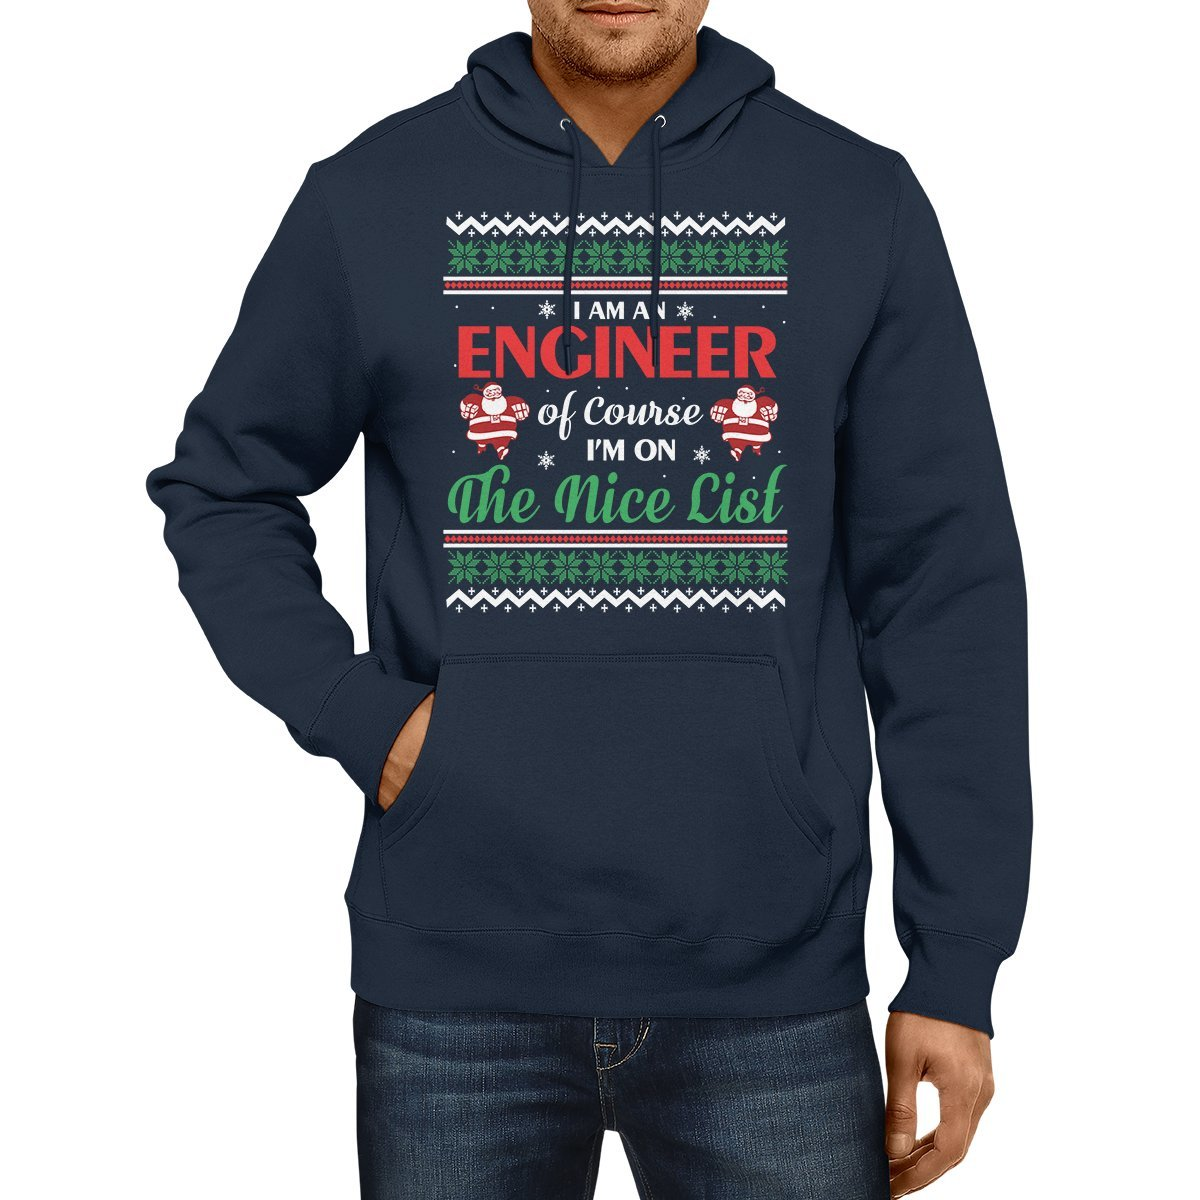 Engineer Ugly Hoodies Christmas Holiday For Engineering Men On The Nice List